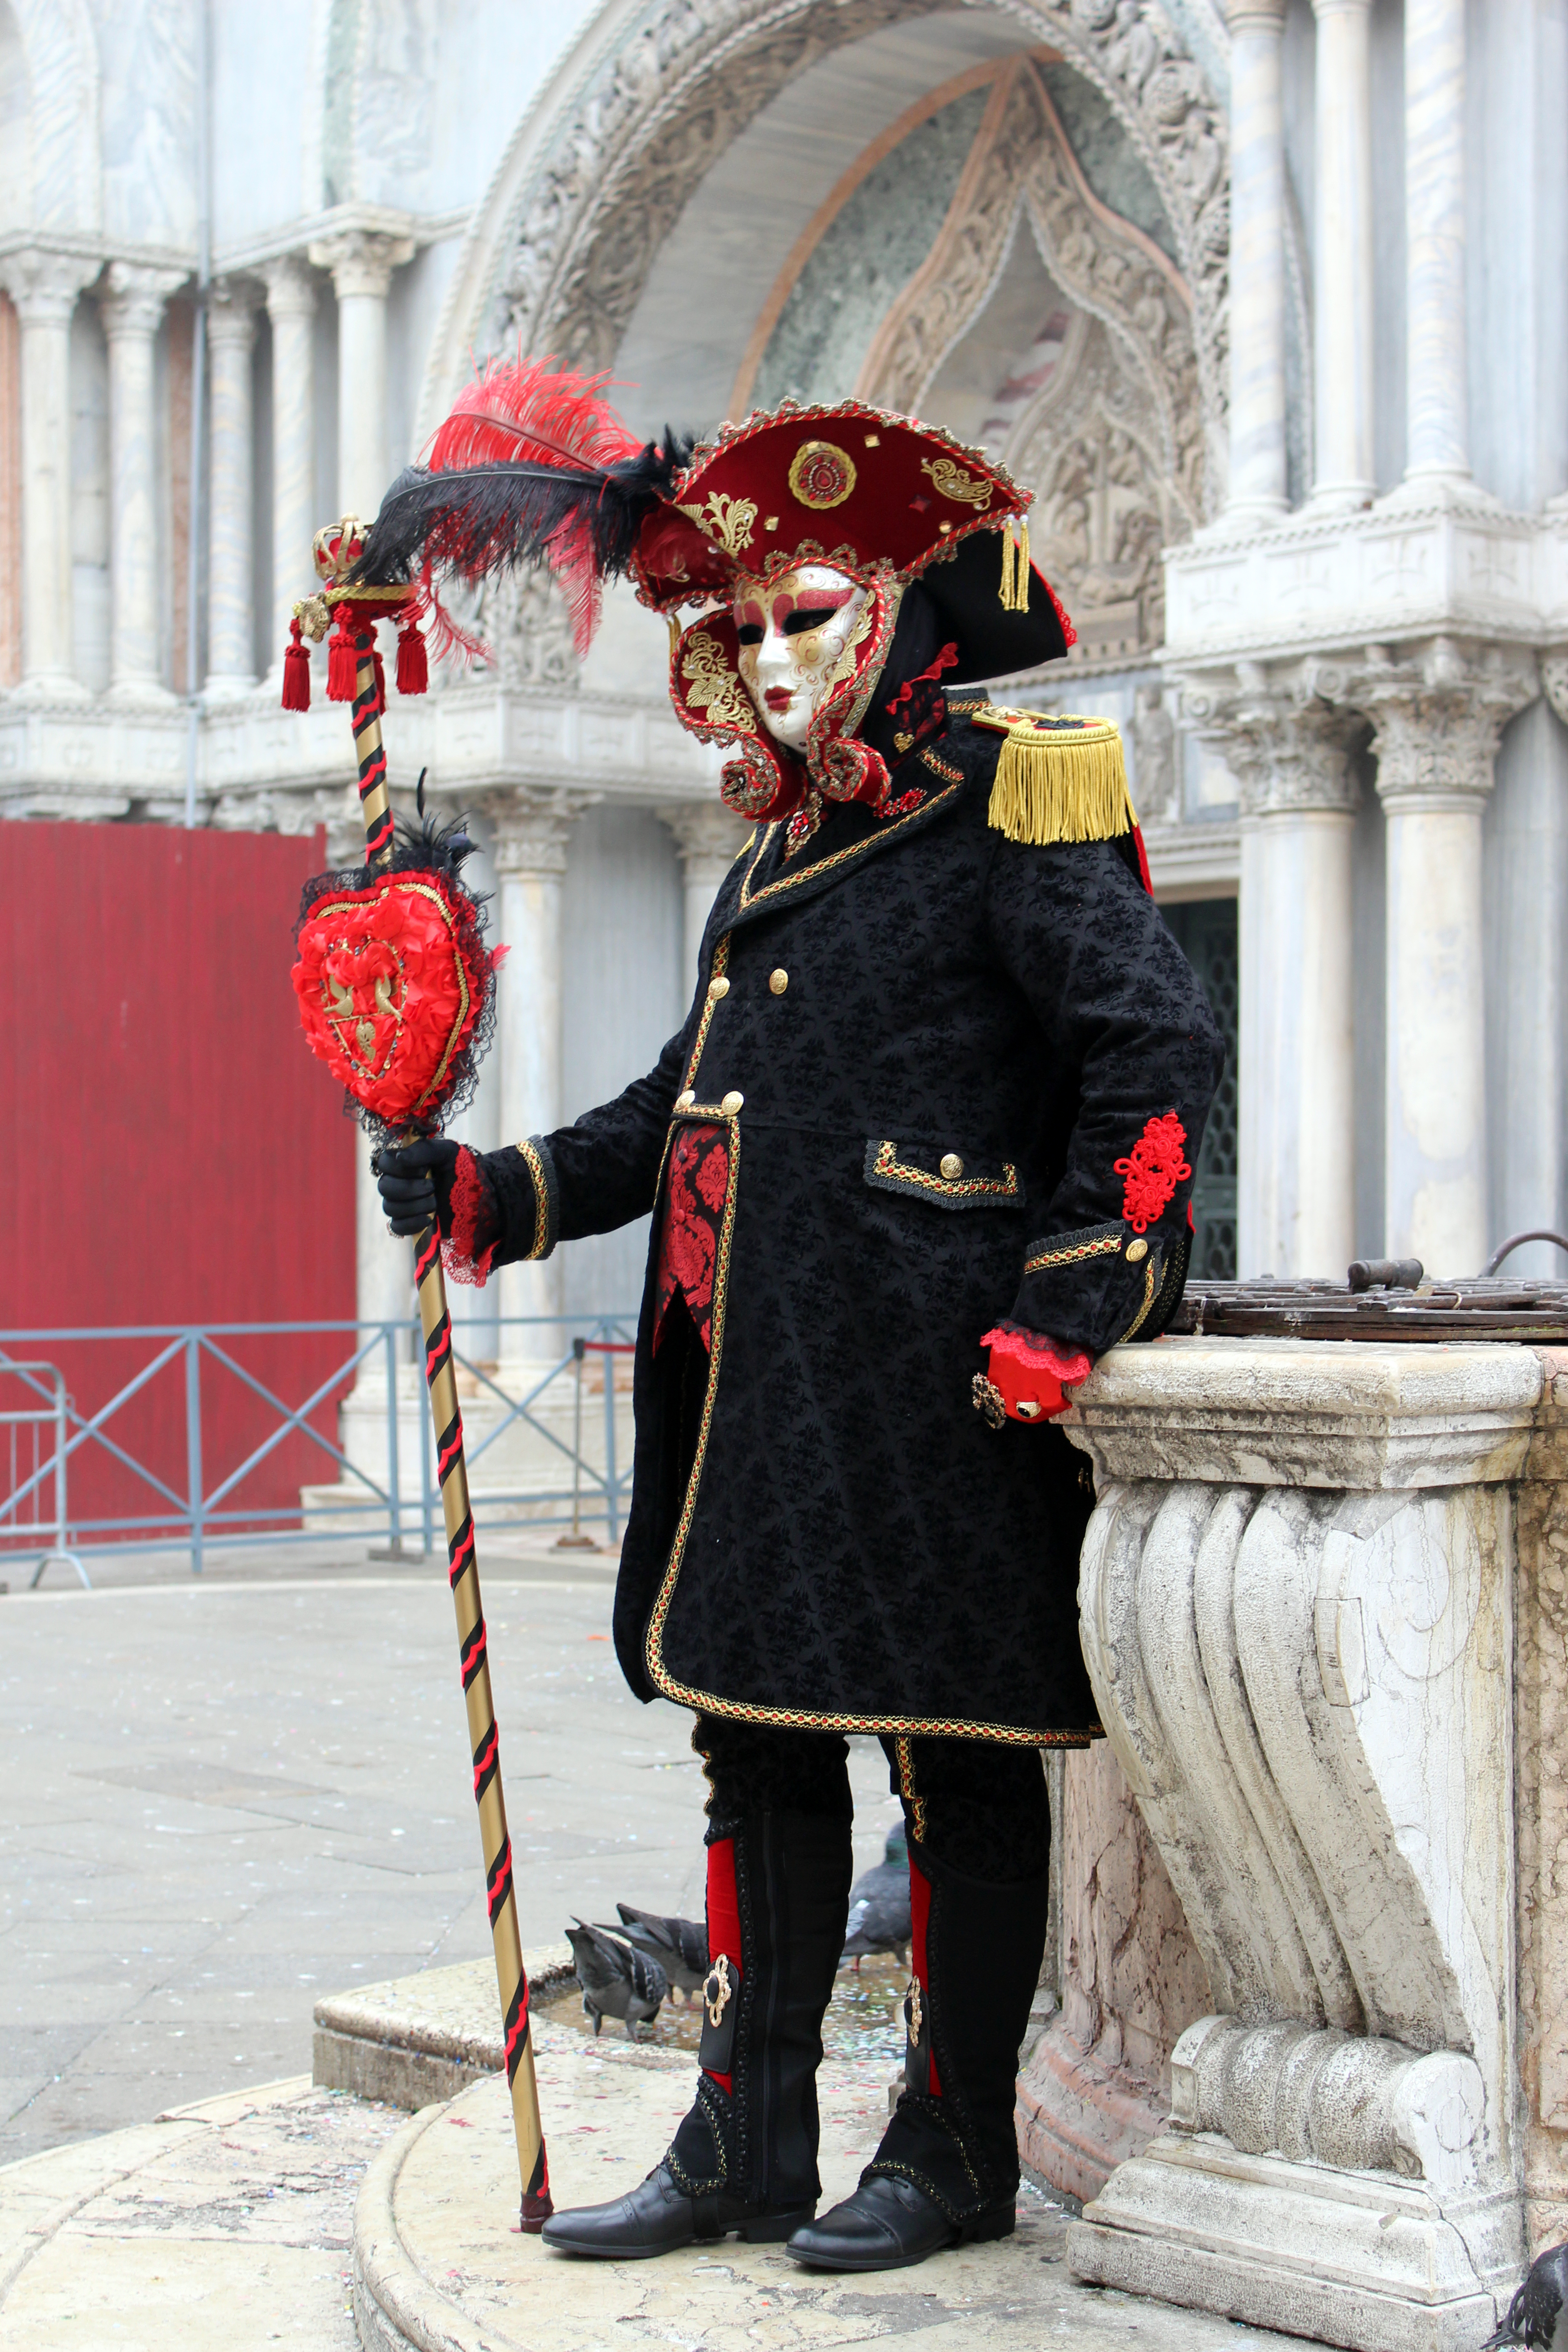 Red and Black Masquerade in Venice Italy during Carnevale